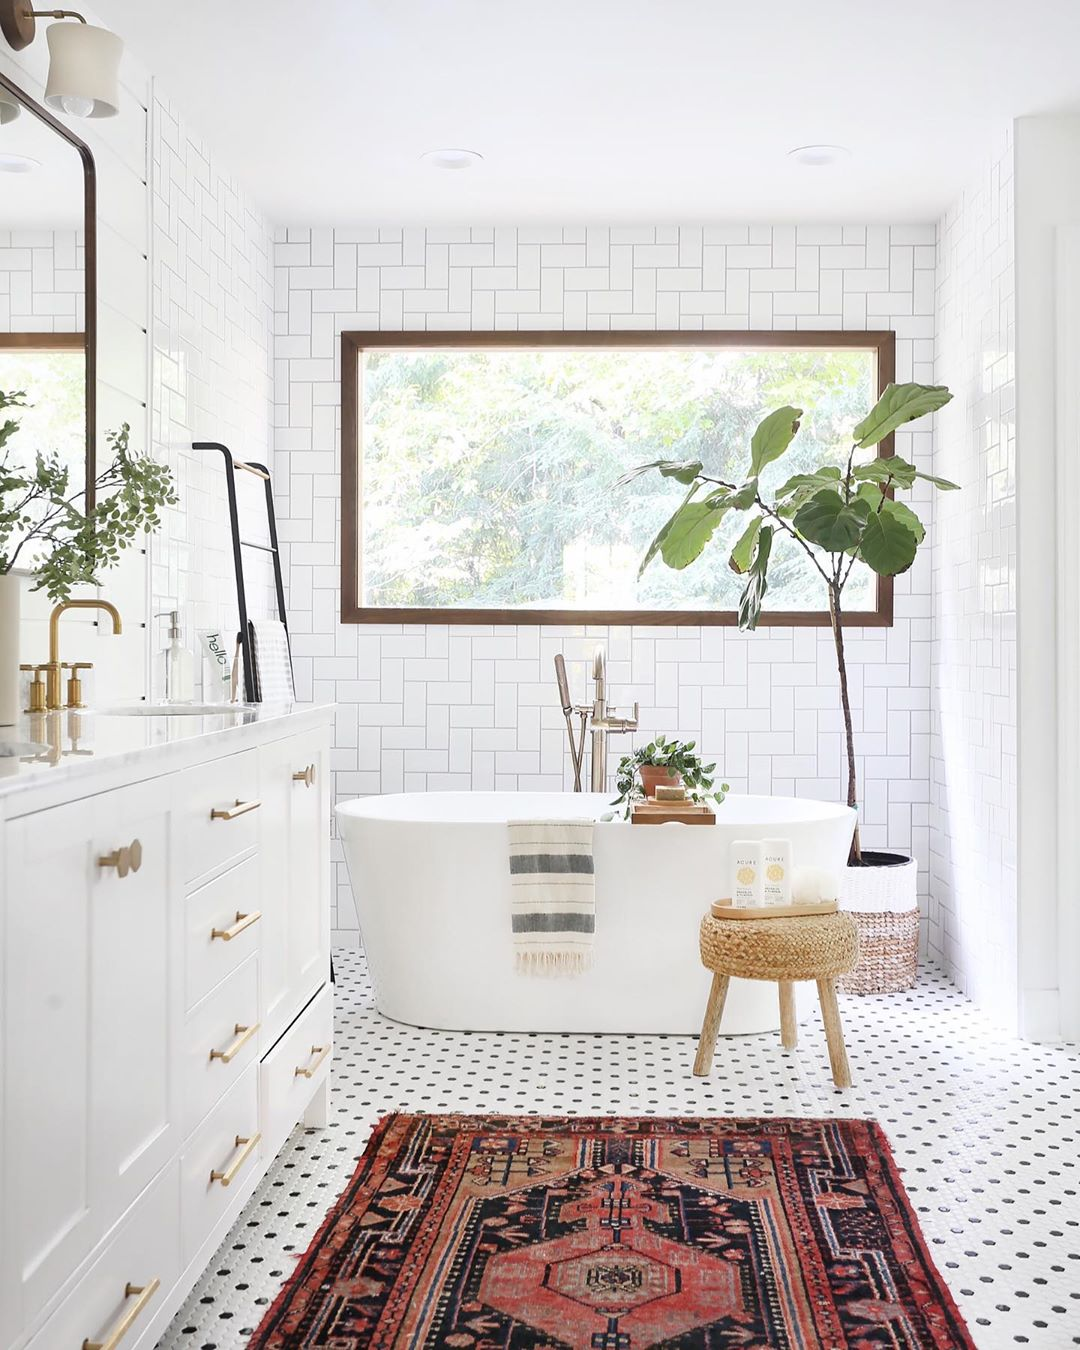 Sunny Circle Studio kept this bathroom full of light with a herringbone tile wall in a stairstep pattern! The tile tub surround was a fun pairing with a classic black and white penny round tile floor and a modern slipper tub to create an airy bathroom that is instantly Pinterest-worthy. The potted plants, woven rattan stool, and vintage bohemian rug add a little eclectic personality to the mix of classic tile patterns!